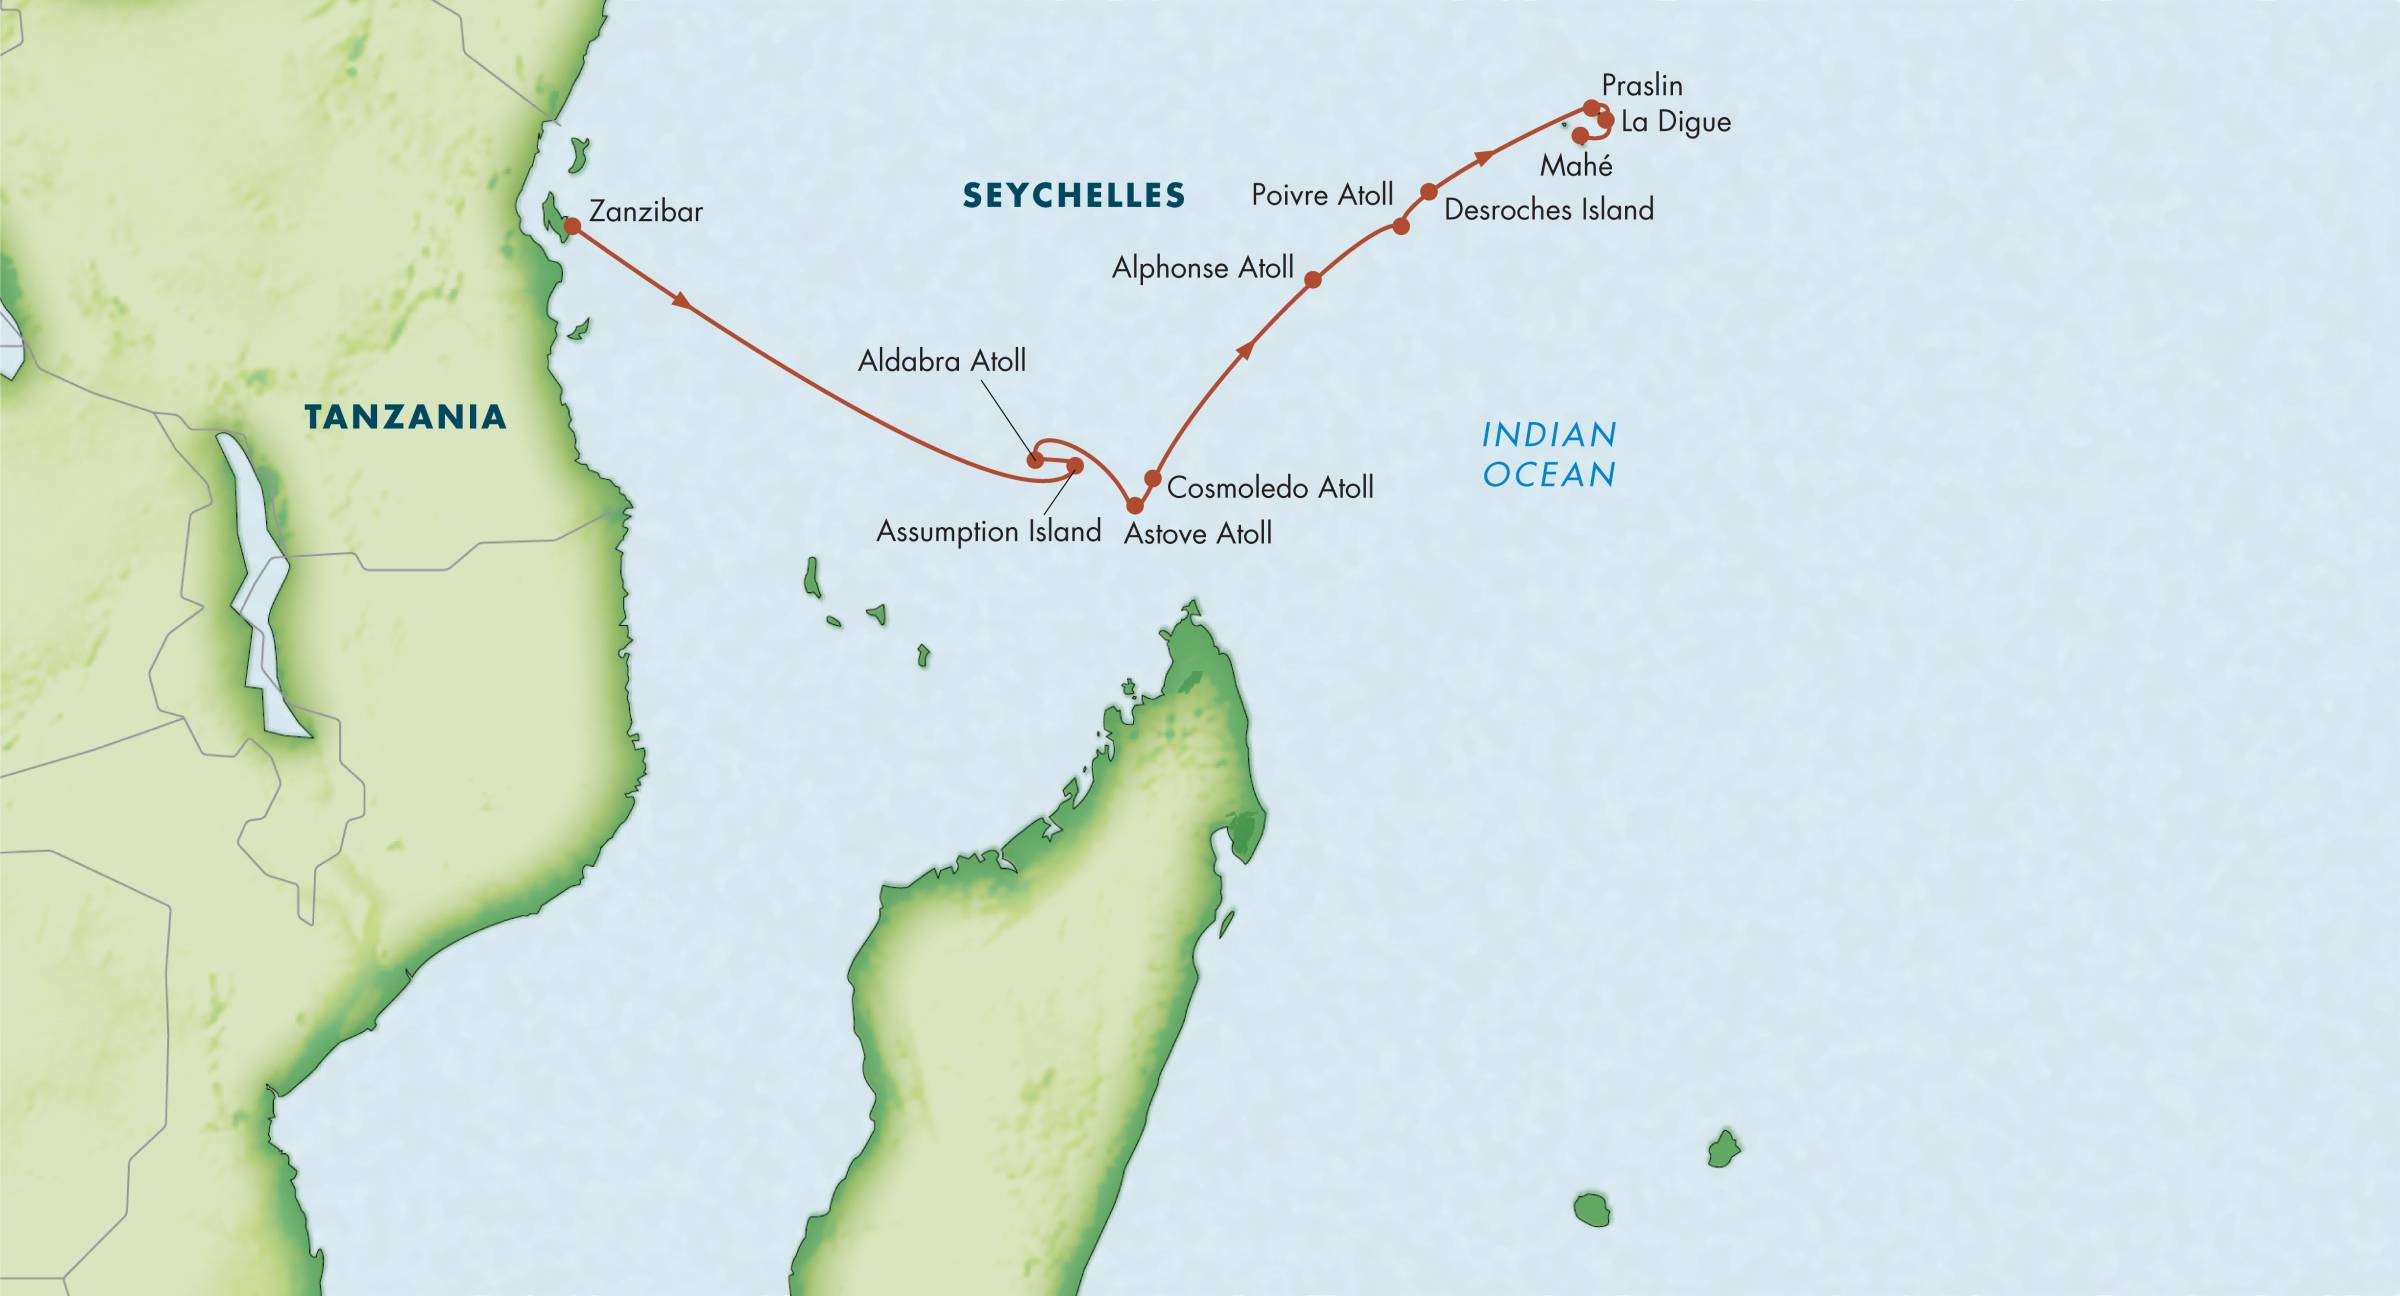 Map for Ultimate Seychelles with Aldabra Atoll